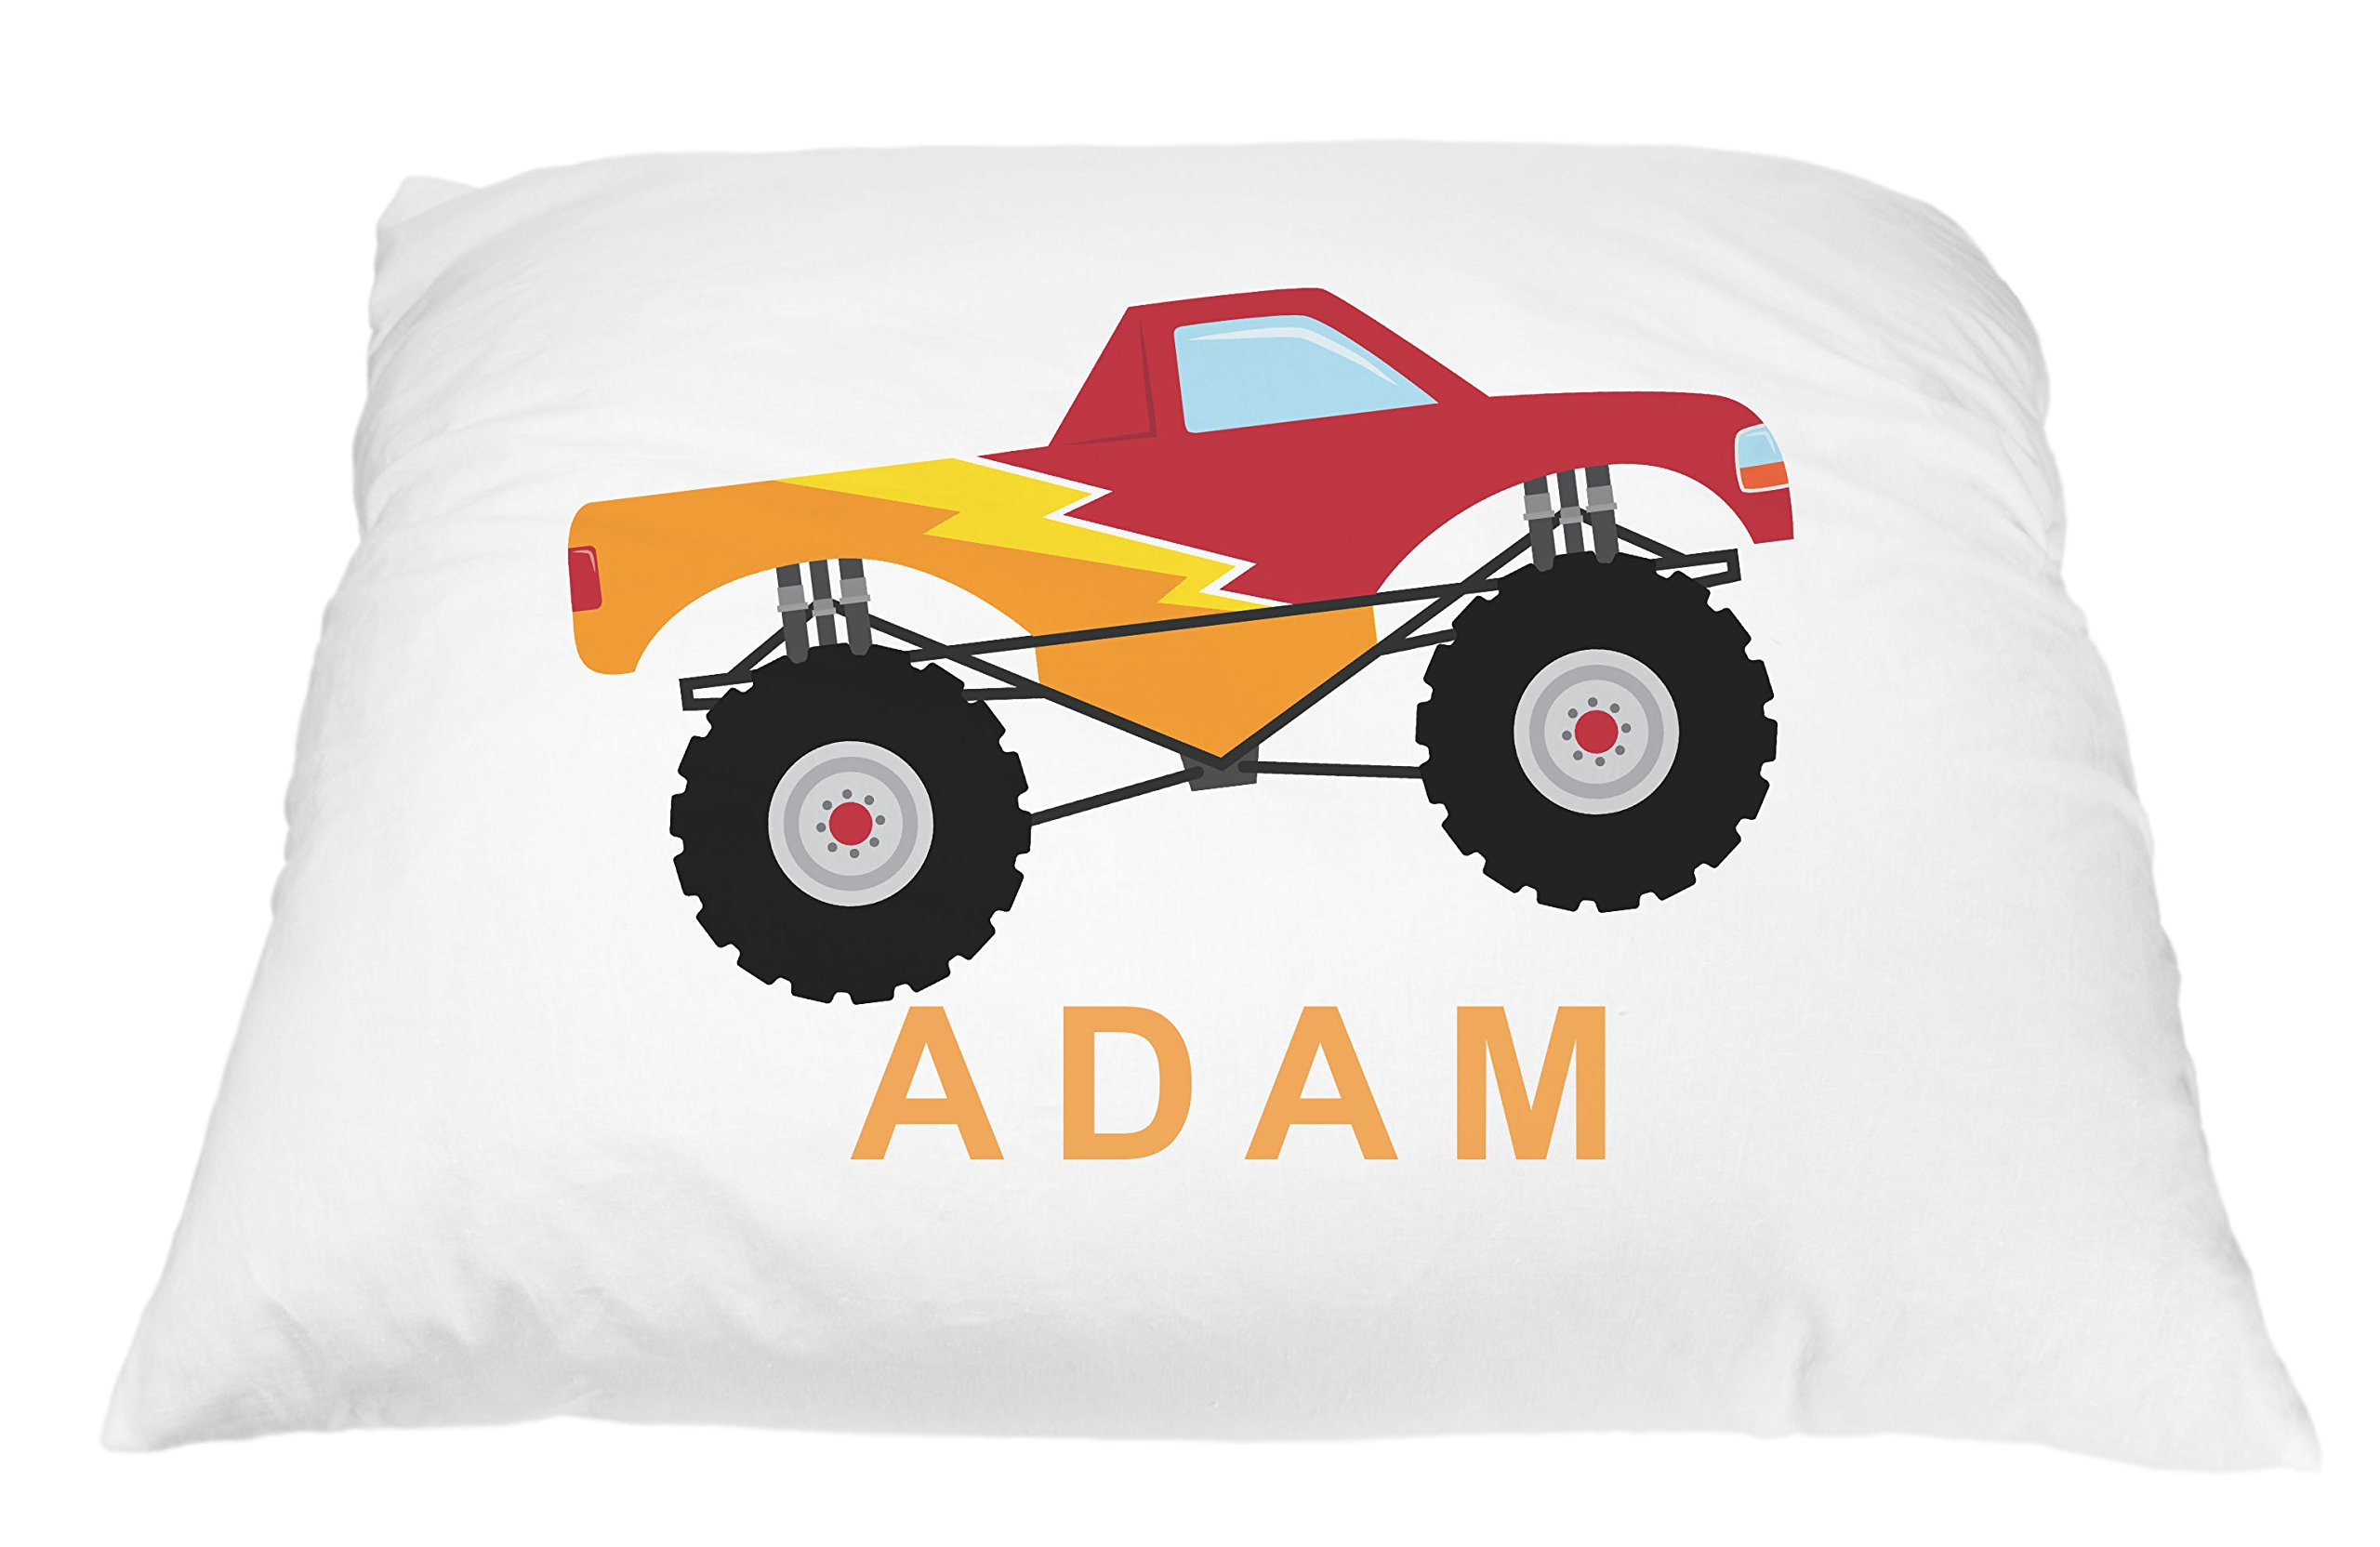 Monster Truck Personalized Kids Pillowcase, Truck Pillow, Toddler Pillowcase, Truck Pillowcase, Best Toddler Pillow, Monster Truck Pillow Microfiber Pillowcase 20x30 Inches (Red) by Pillows2